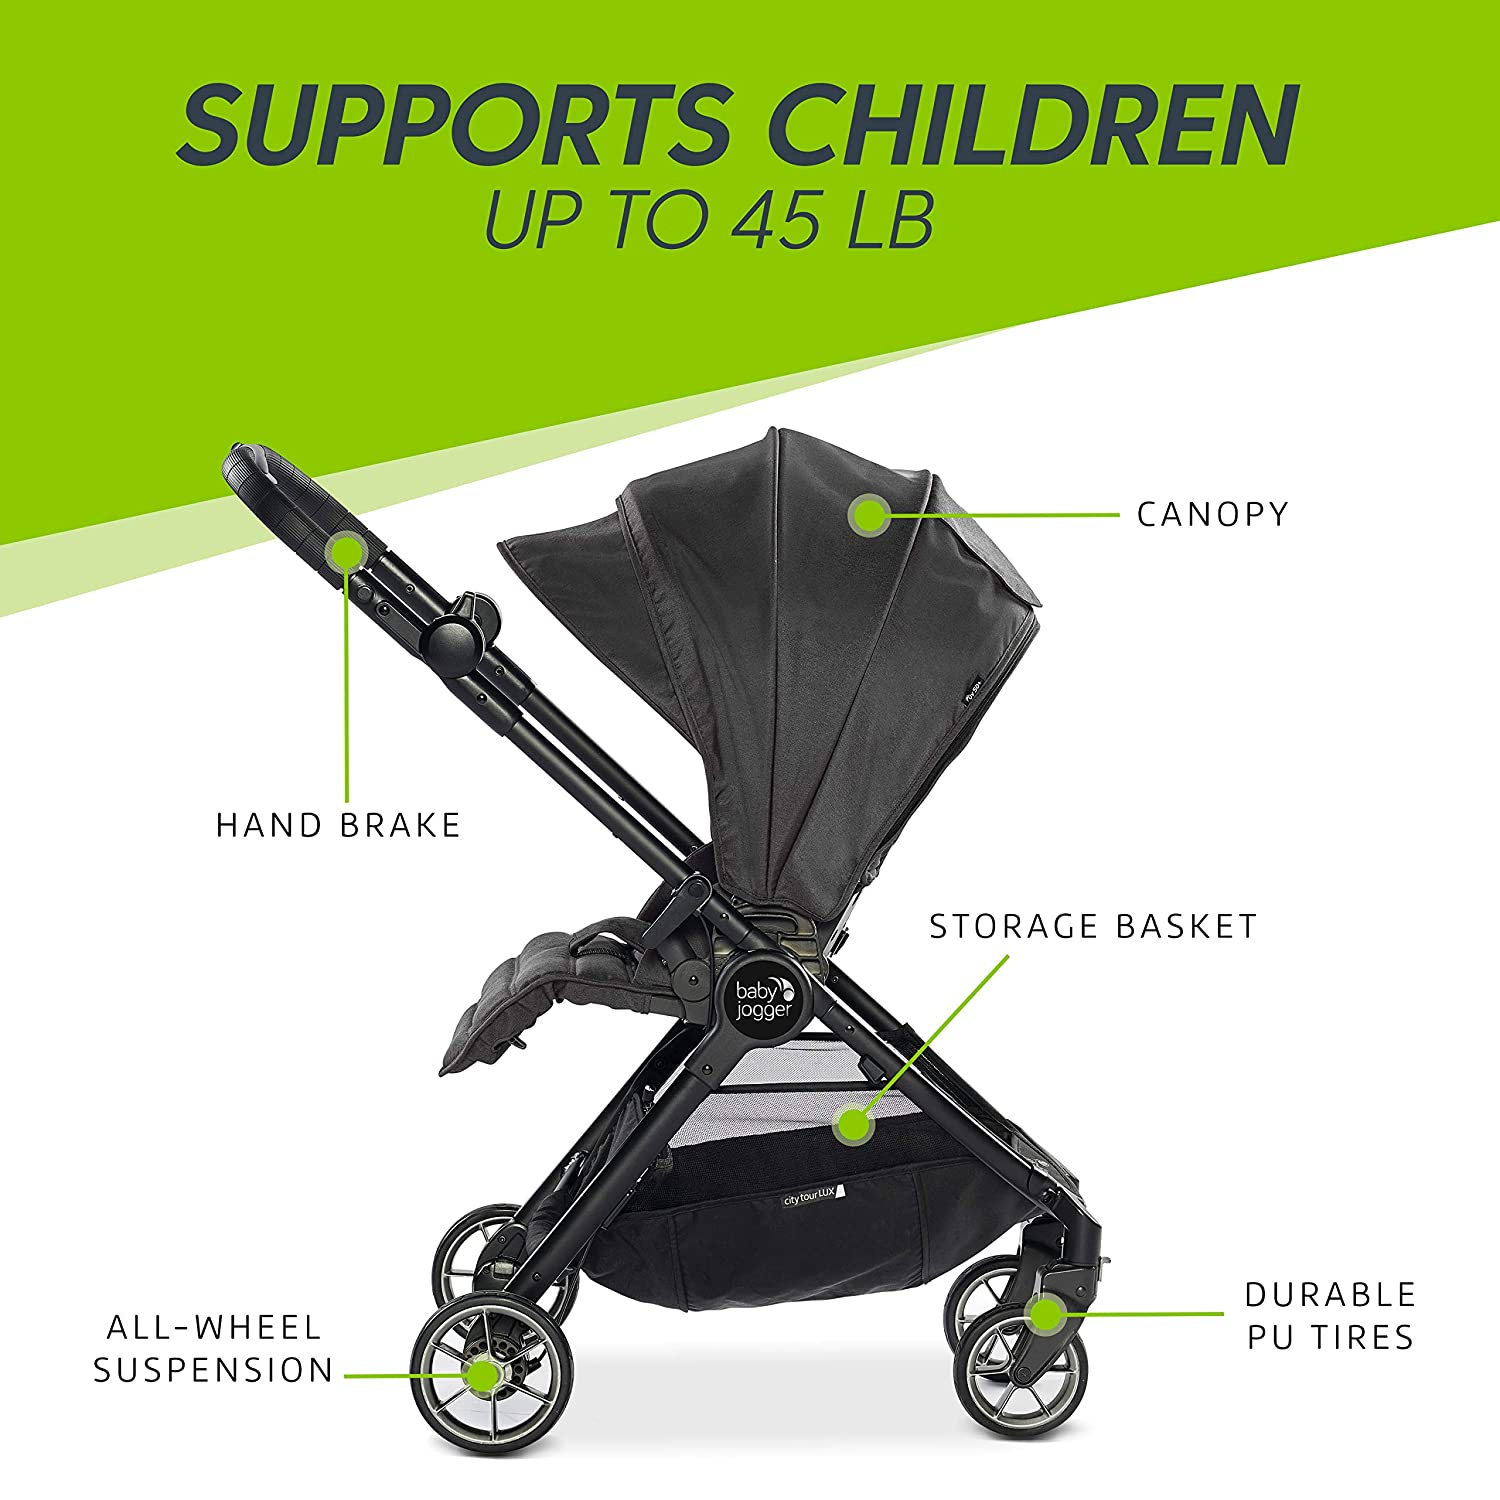 Baby Jogger City Tour Lux Stroller Compact Travel Stroller Lightweight Baby Stroller With